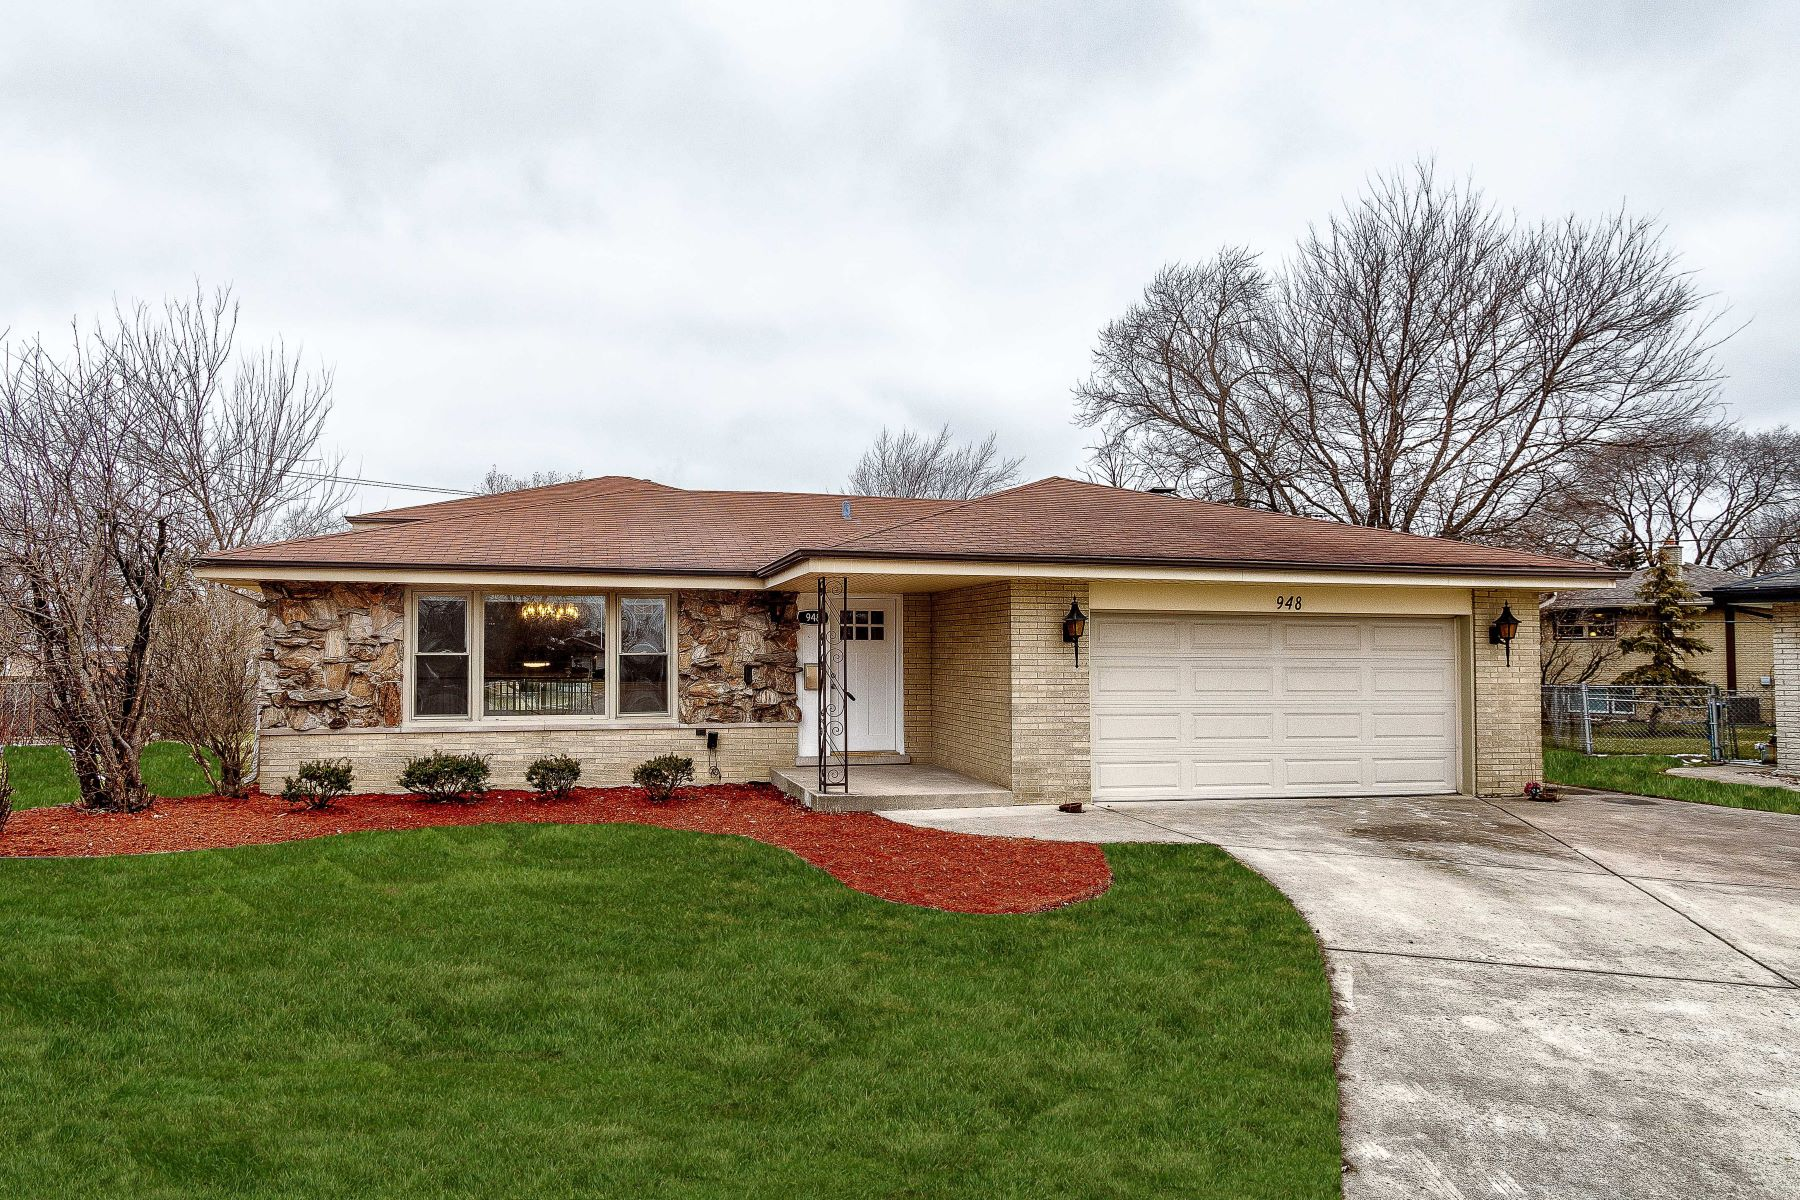 Single Family Homes for Active at Rehabbed Brick Split Level Home 948 E 170th Place South Holland, Illinois 60473 United States